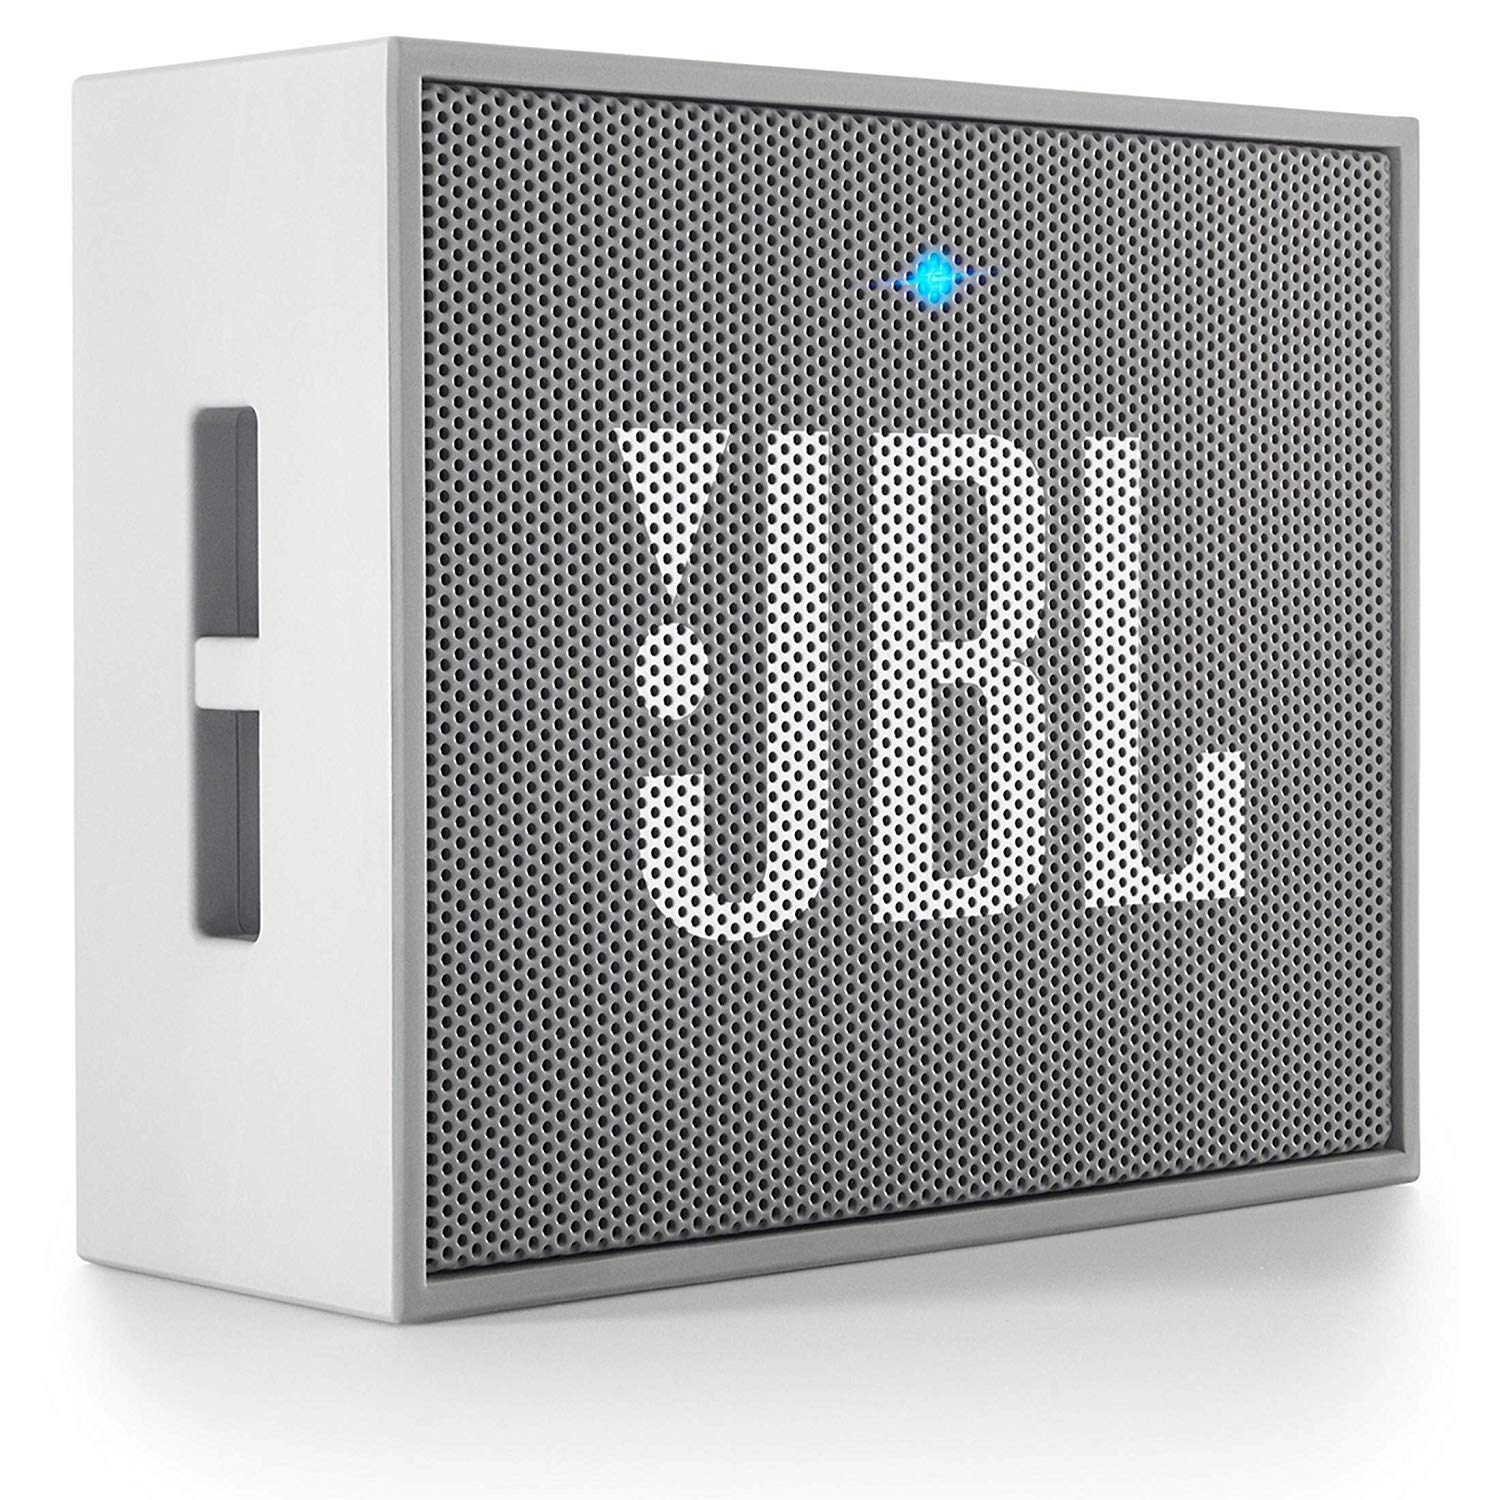 JBL GO Portable Wireless Bluetooth Speaker with Mic (Gray) product image